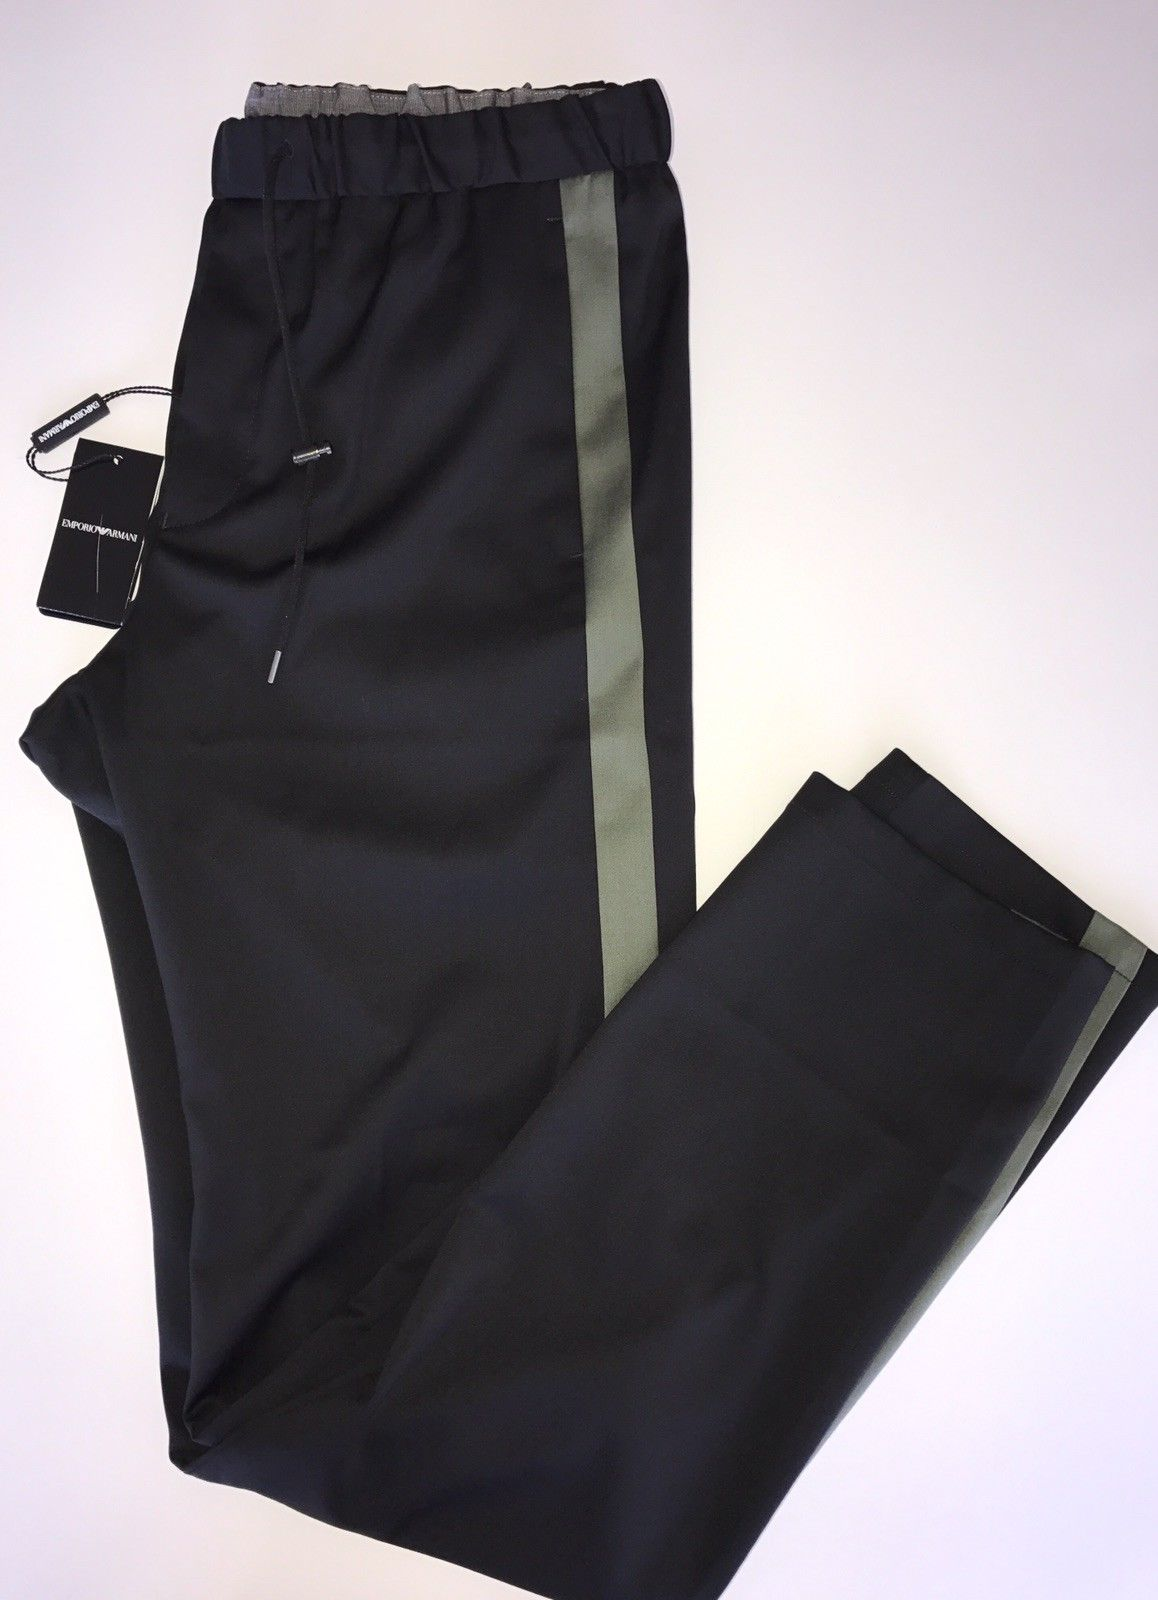 New $525 Emporio Armani Black Mens Wool Casual Pants Size 34 (50 Eu)V1P710 Italy